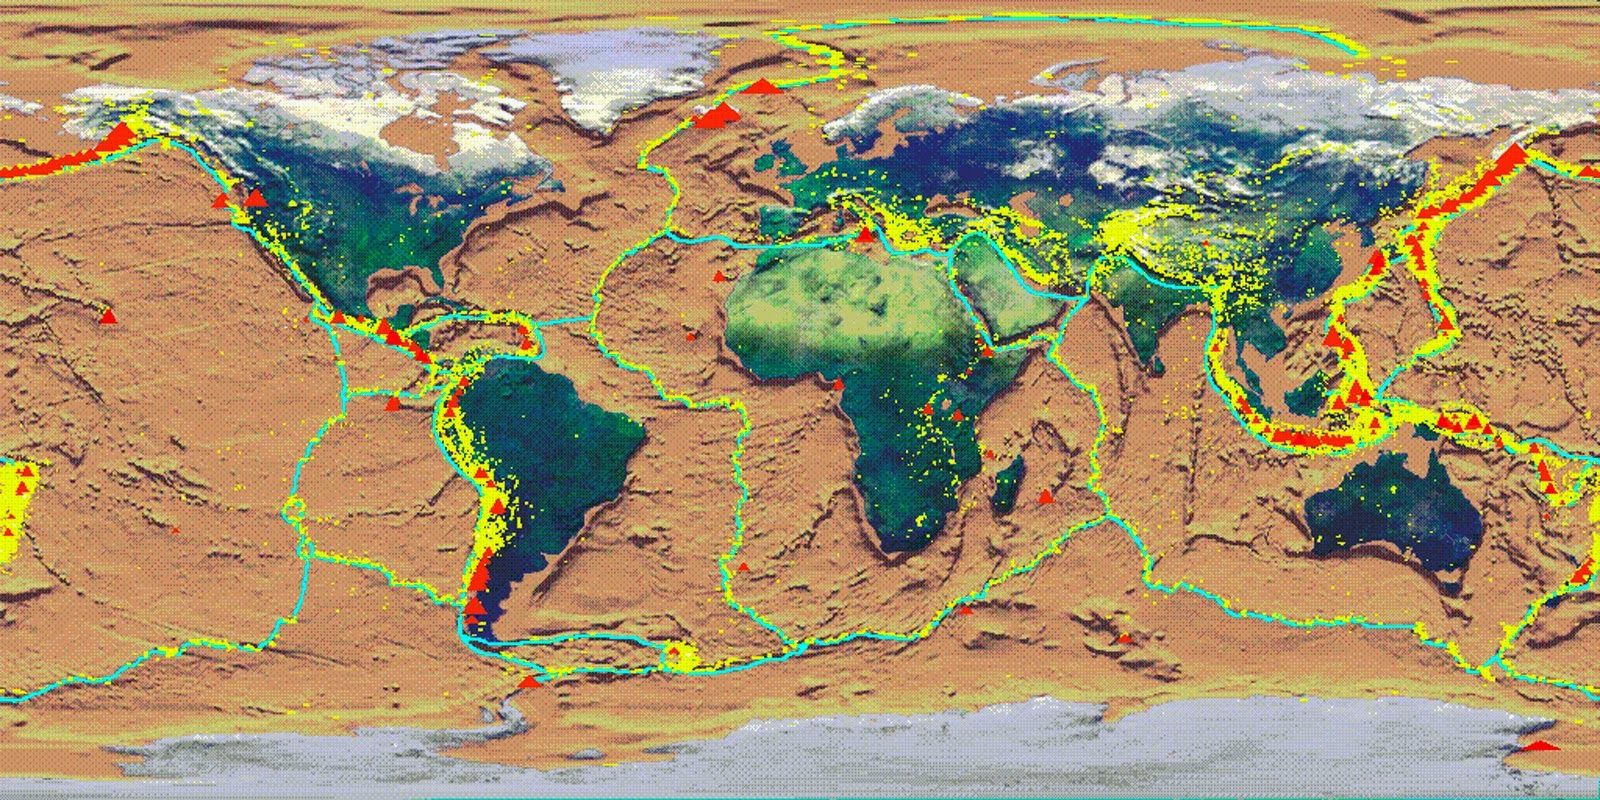 Geologists Solve Tectonic Plate Mystery With Half A Tonne